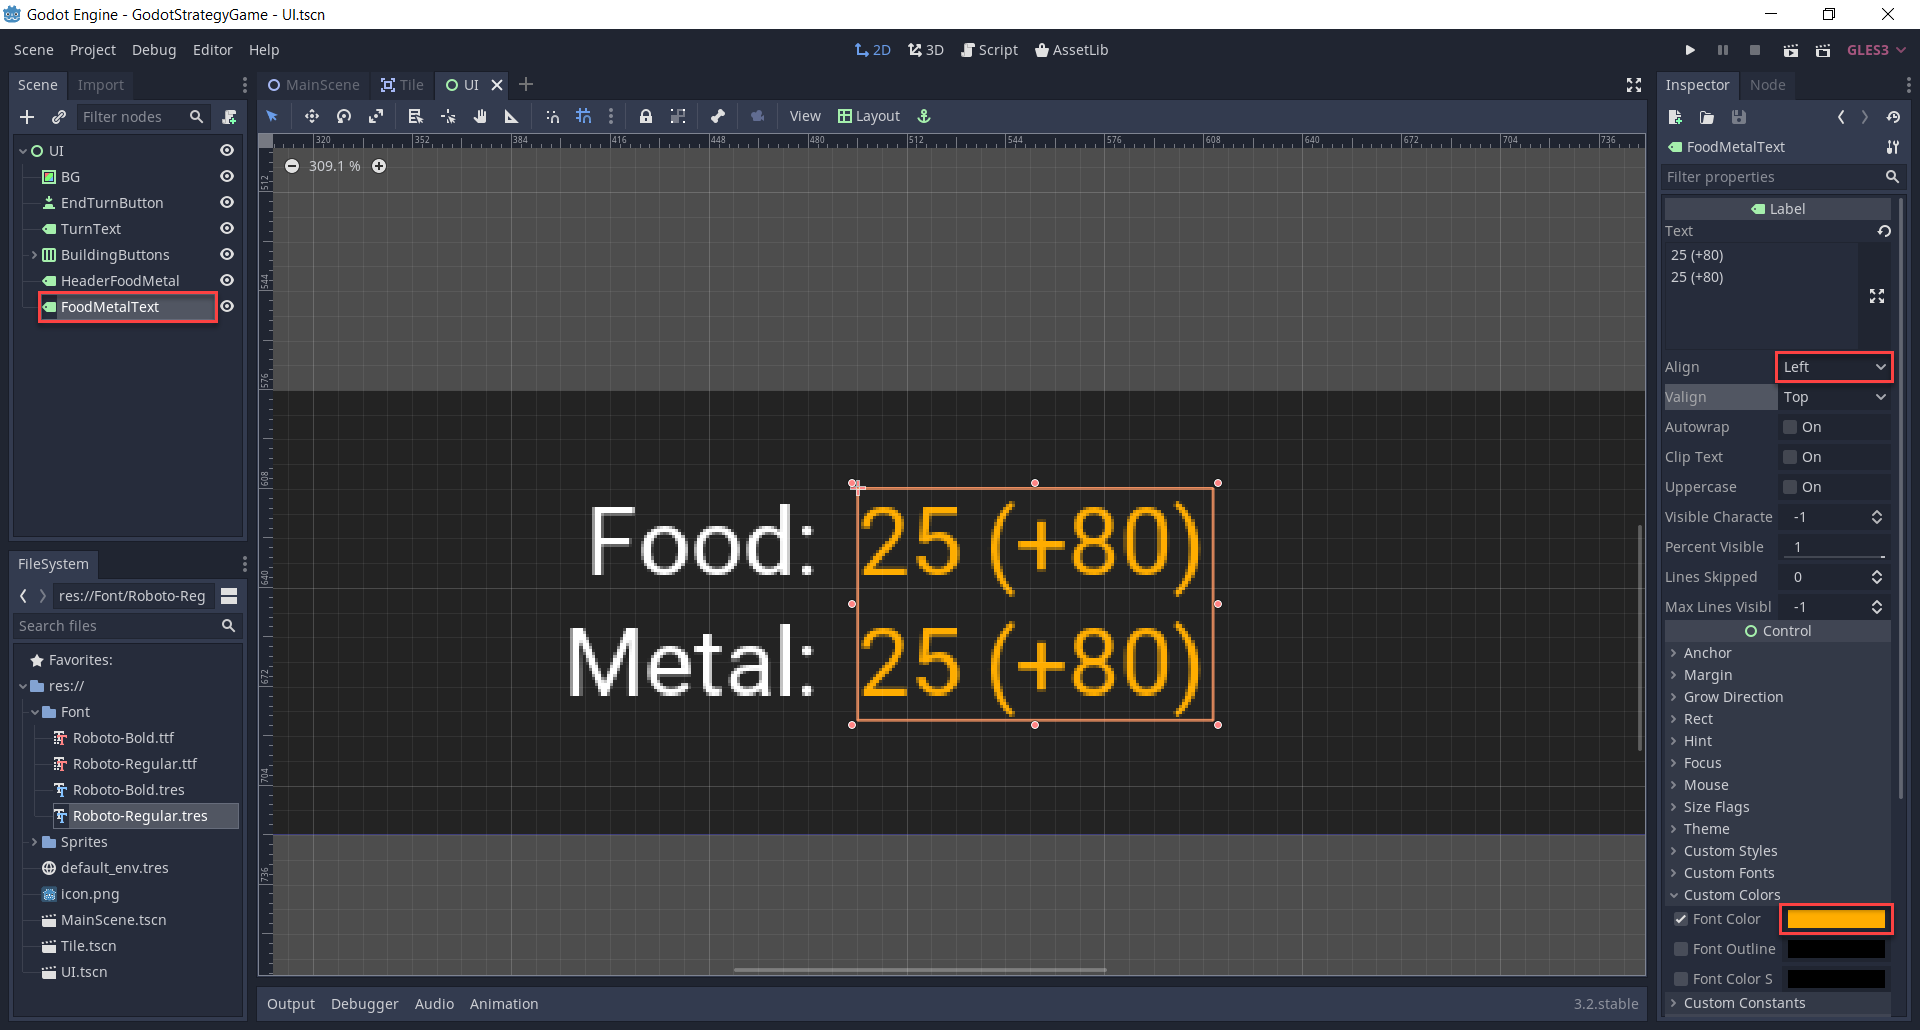 Creating the resource values for the food and metal.